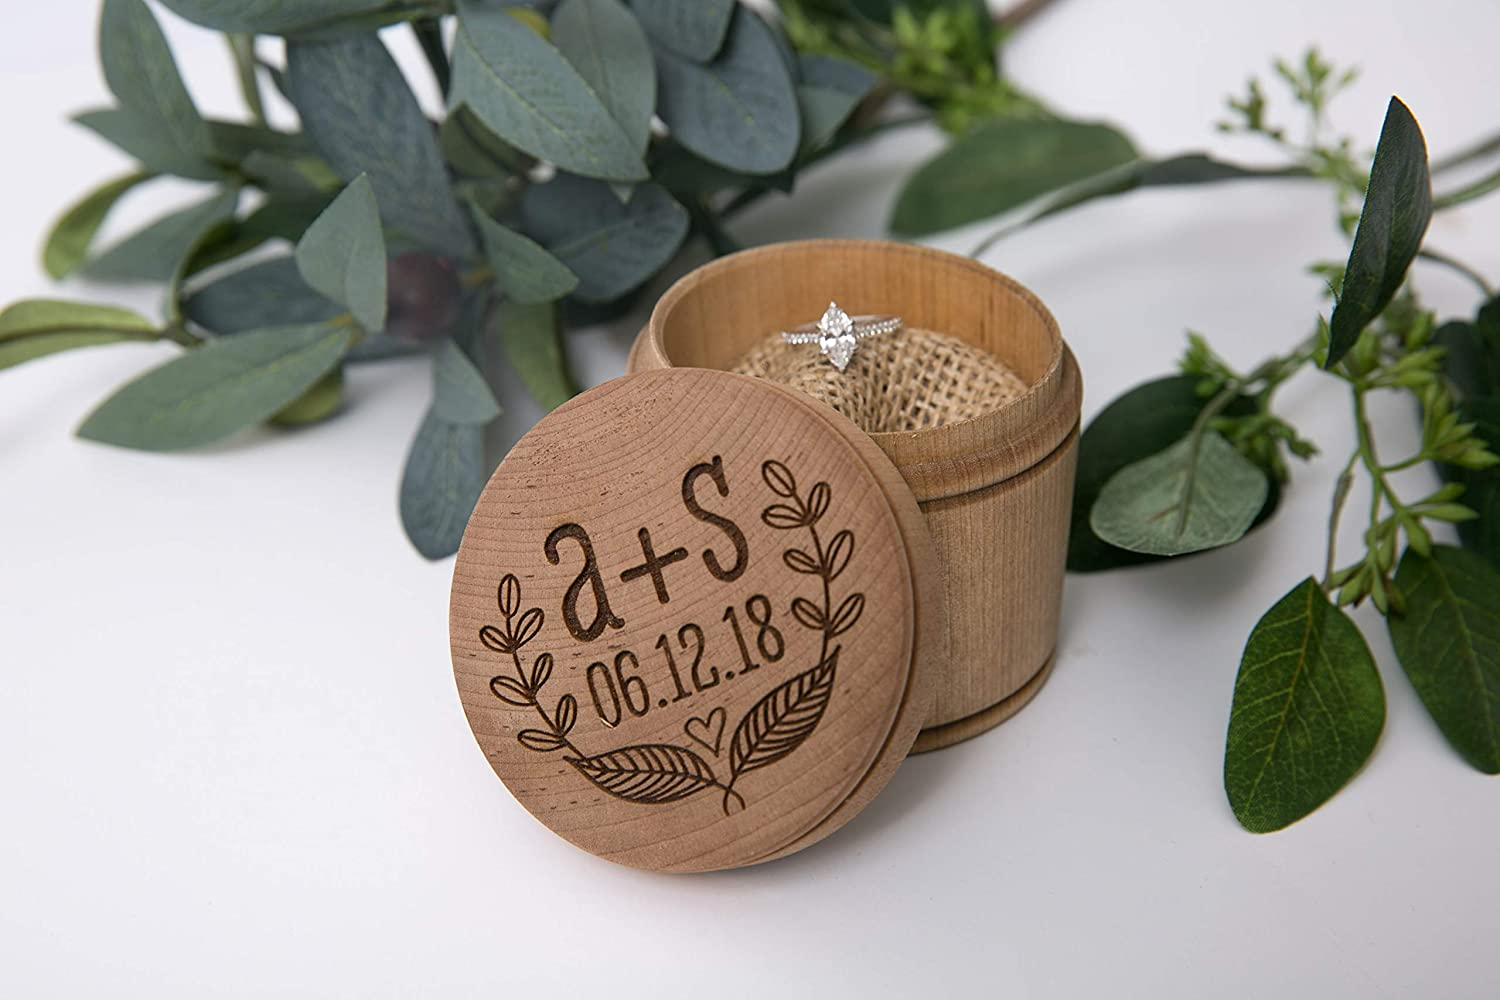 Personalized Engraved Ring Bearer Pillow Box - Leaves Initials and Date